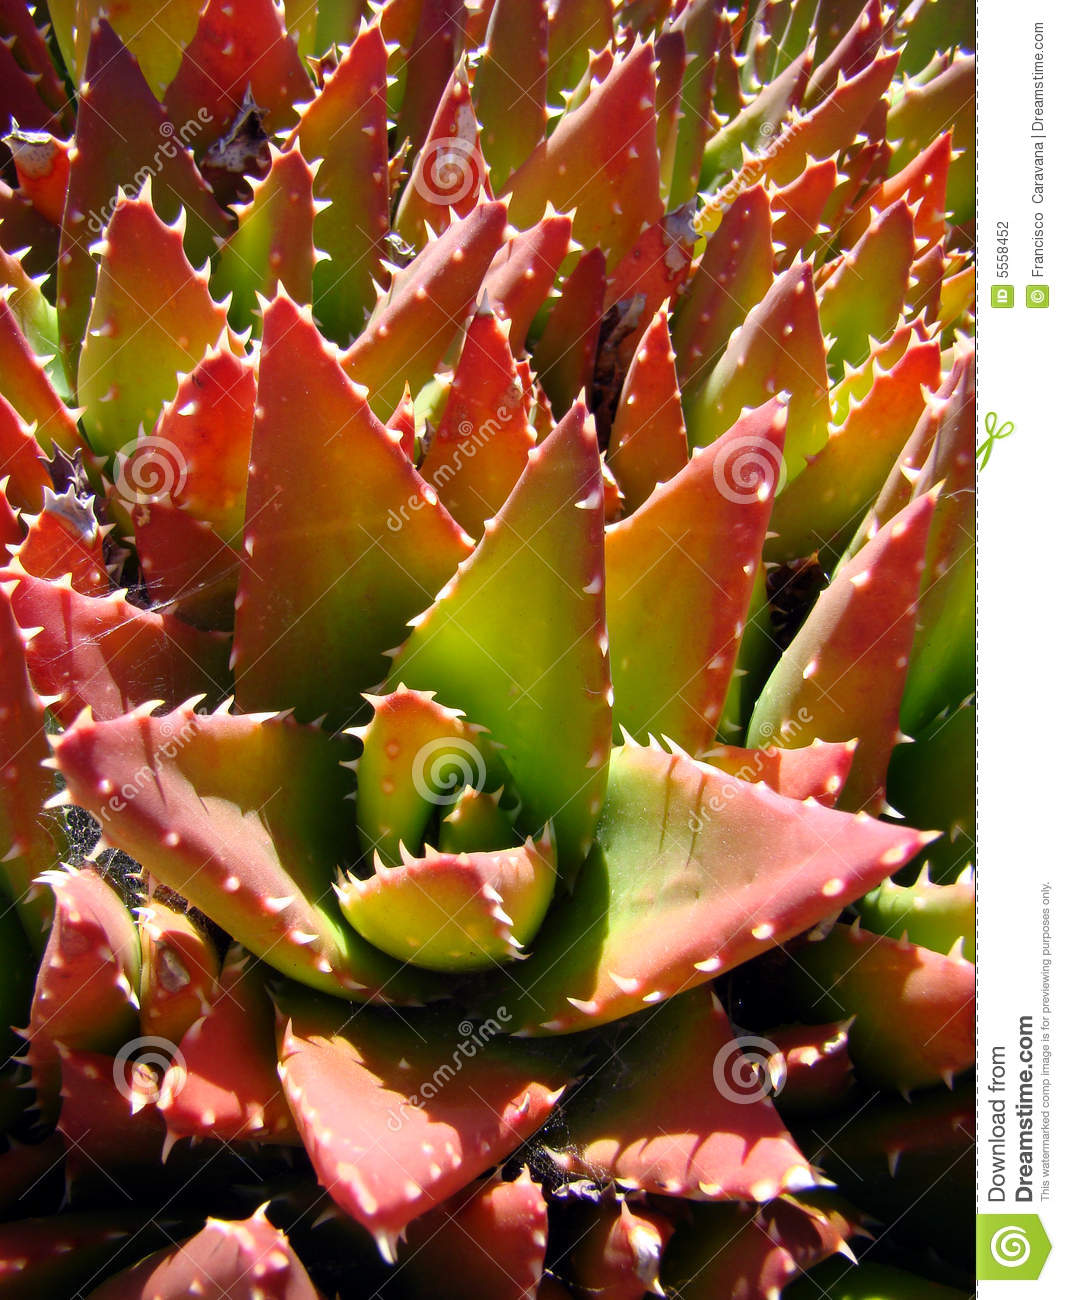 Red And Green Cactus Stock Photography - Image: 5558452